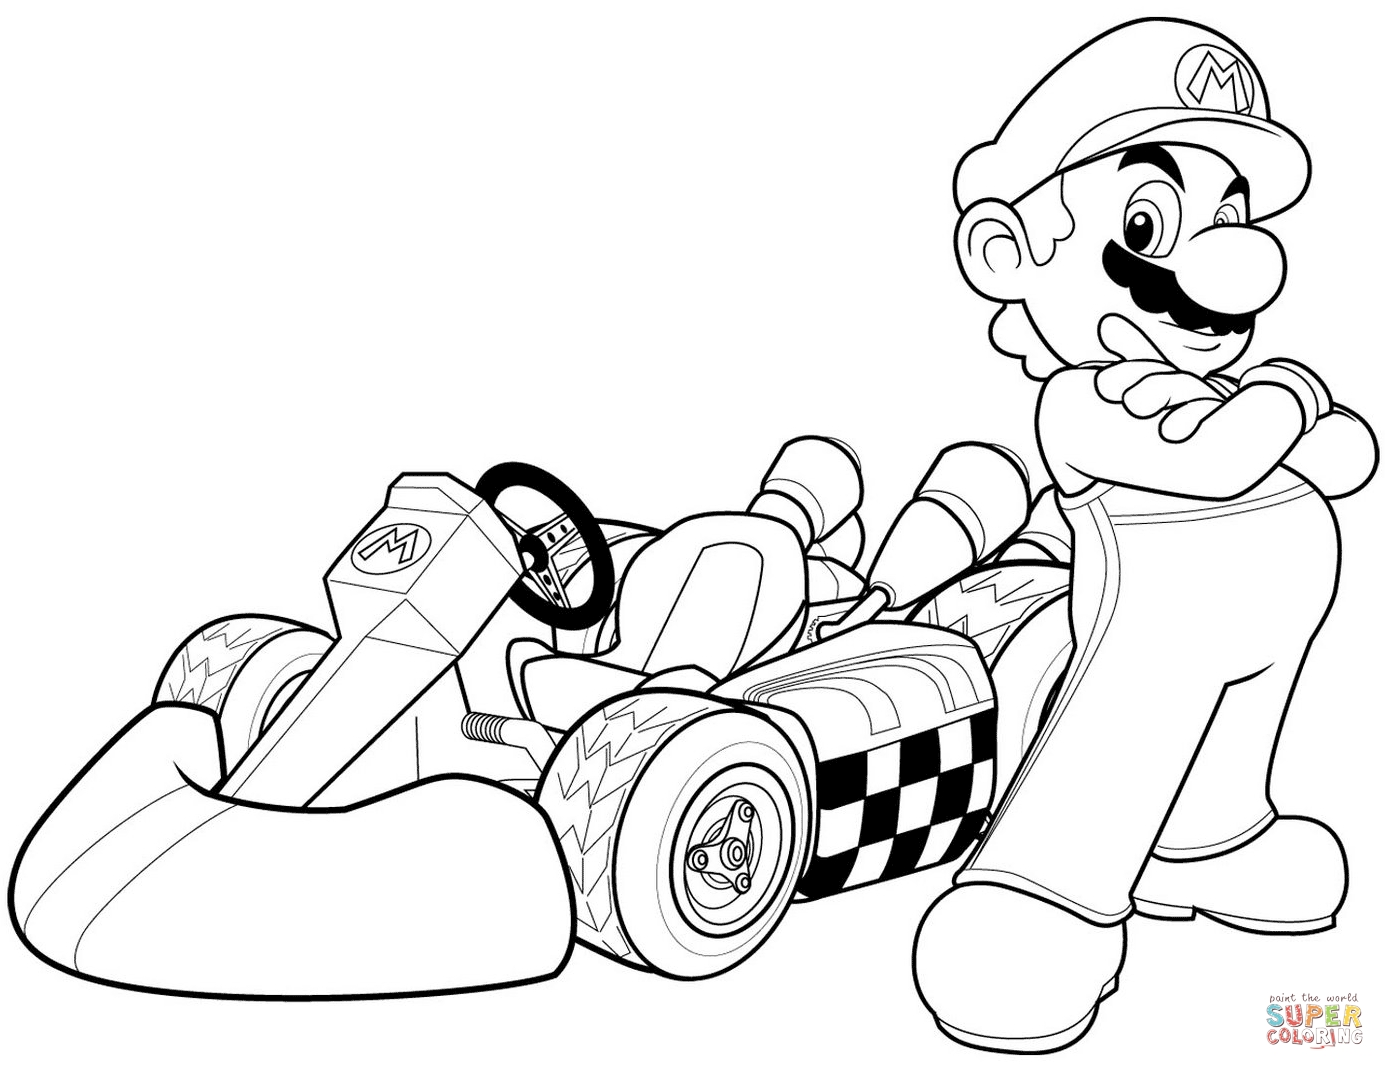 1385x1070 Cool Coloring Pages Mario Kart Characters Super Mario Bros Free